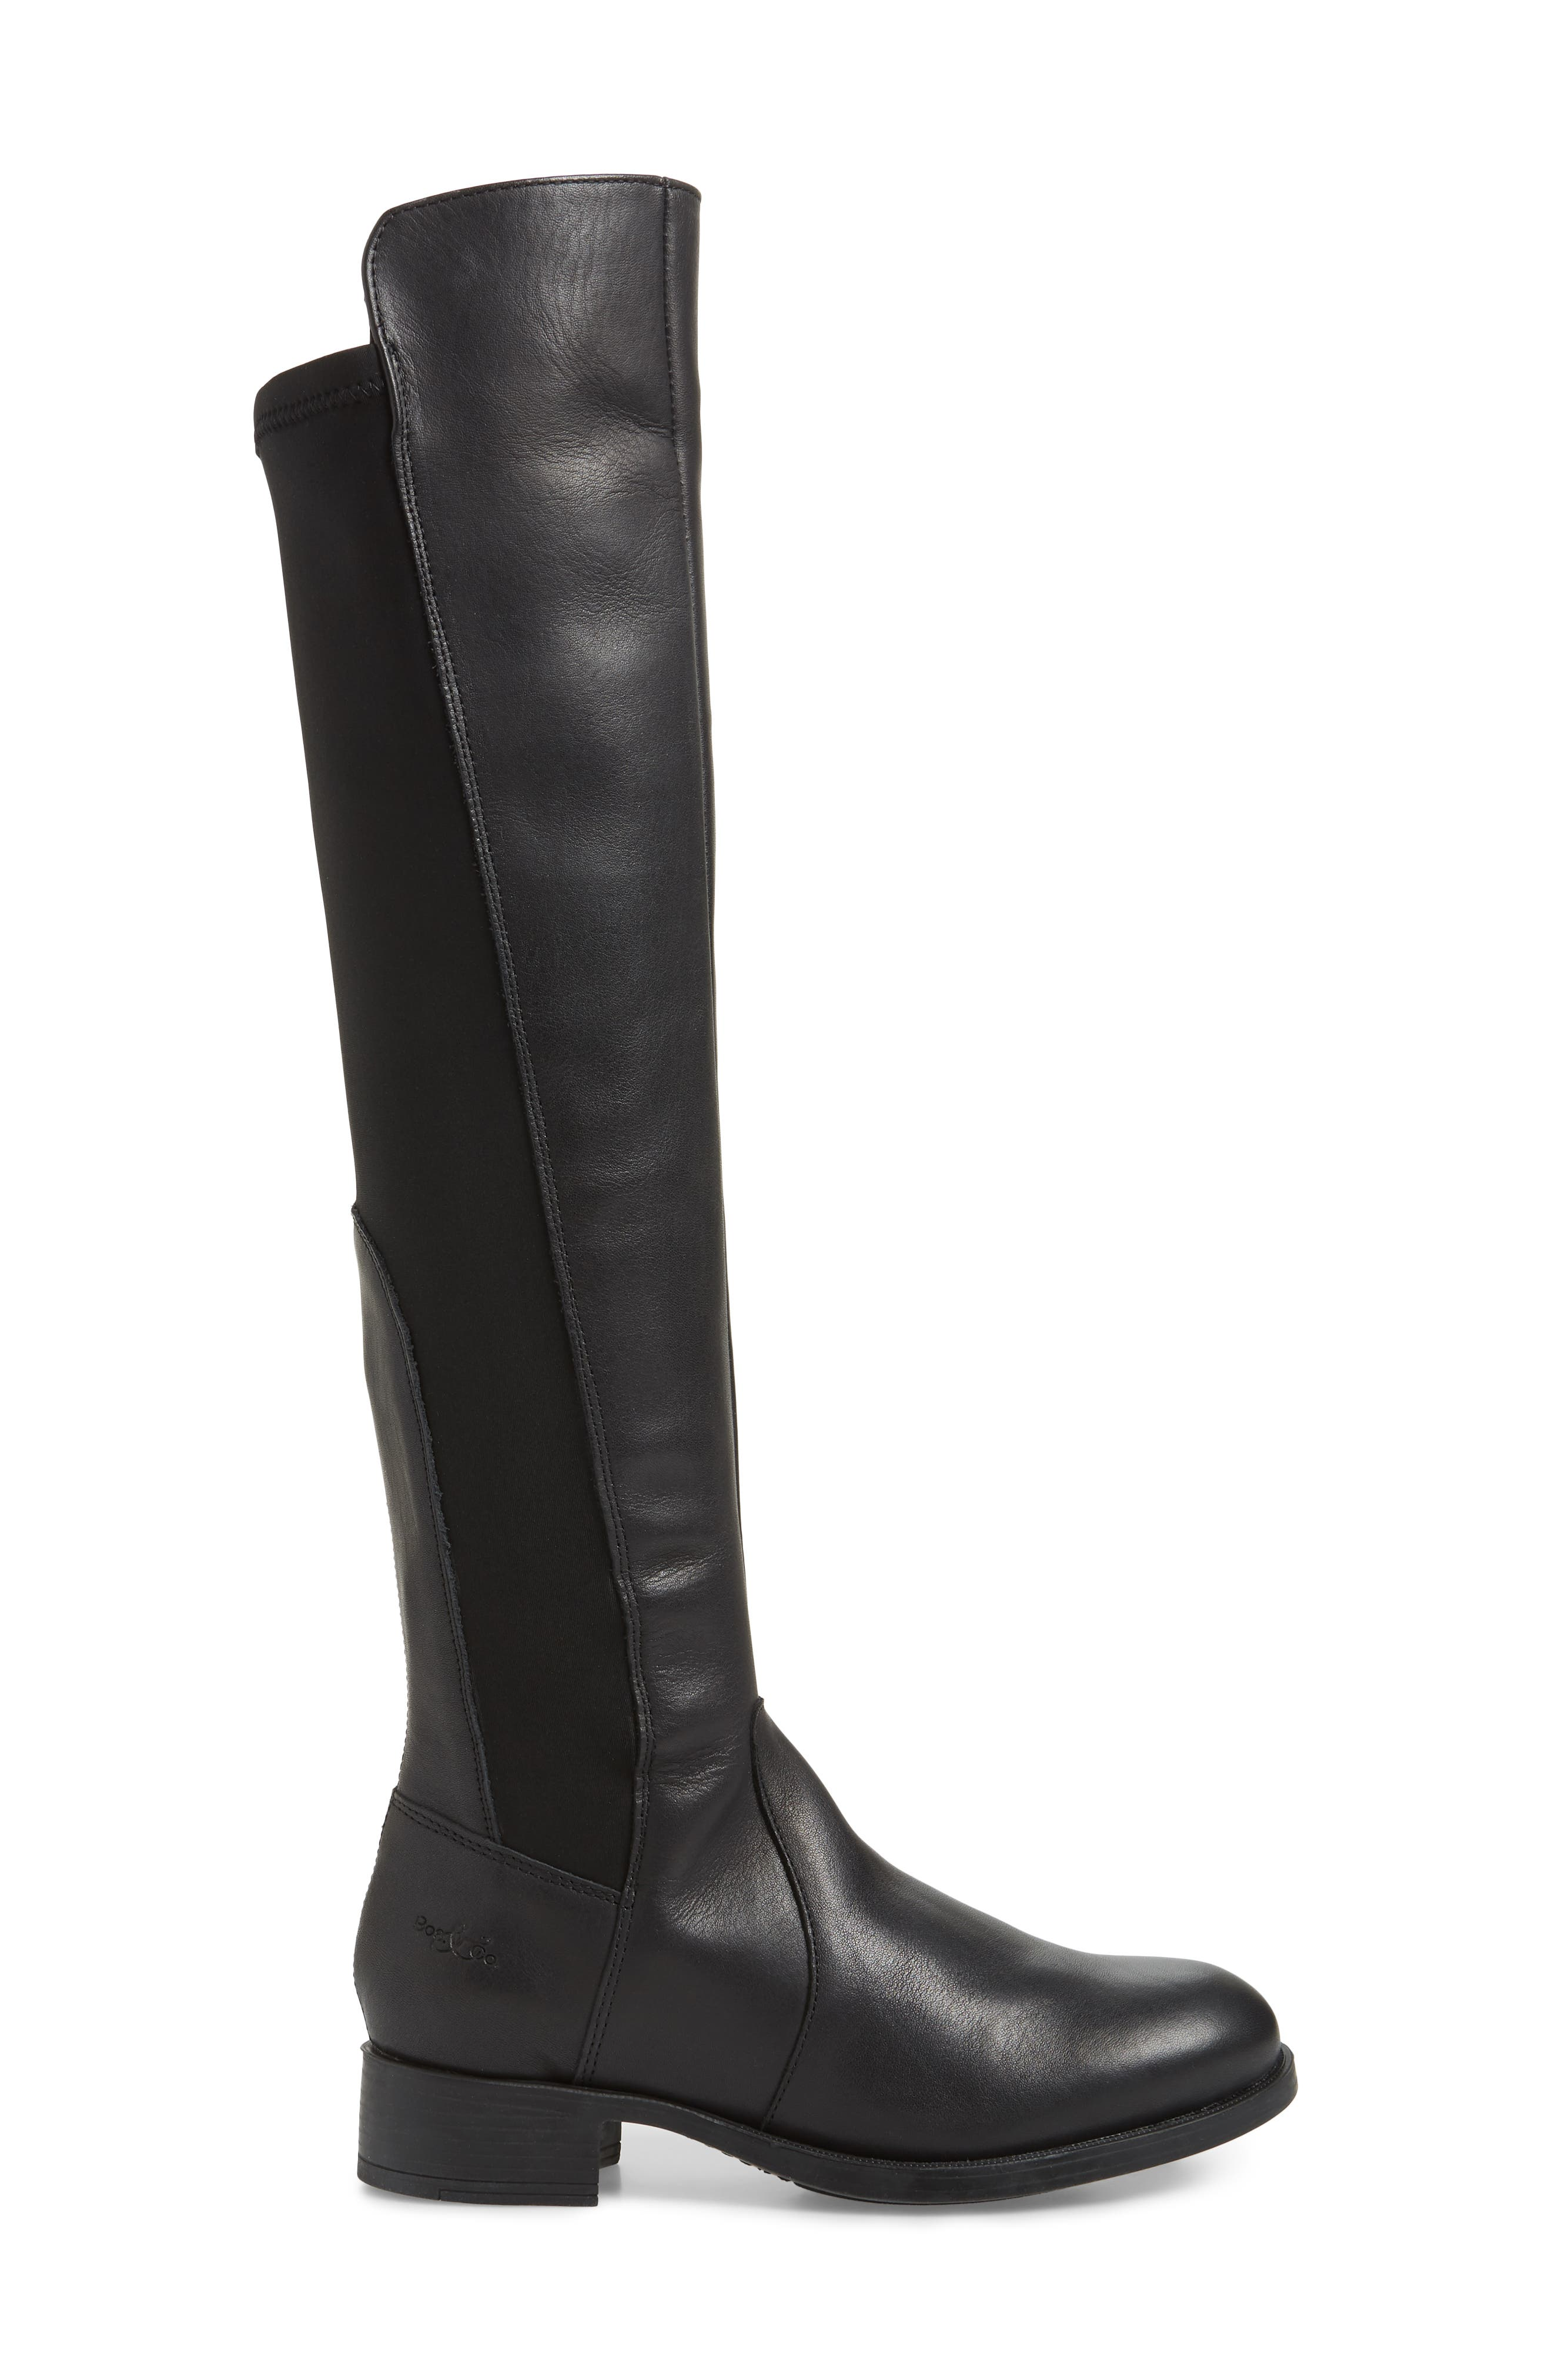 BOS. & CO.,                             Bunt Waterproof Over the Knee Boot,                             Alternate thumbnail 3, color,                             BLACK MELBOURNE/ LYCRA